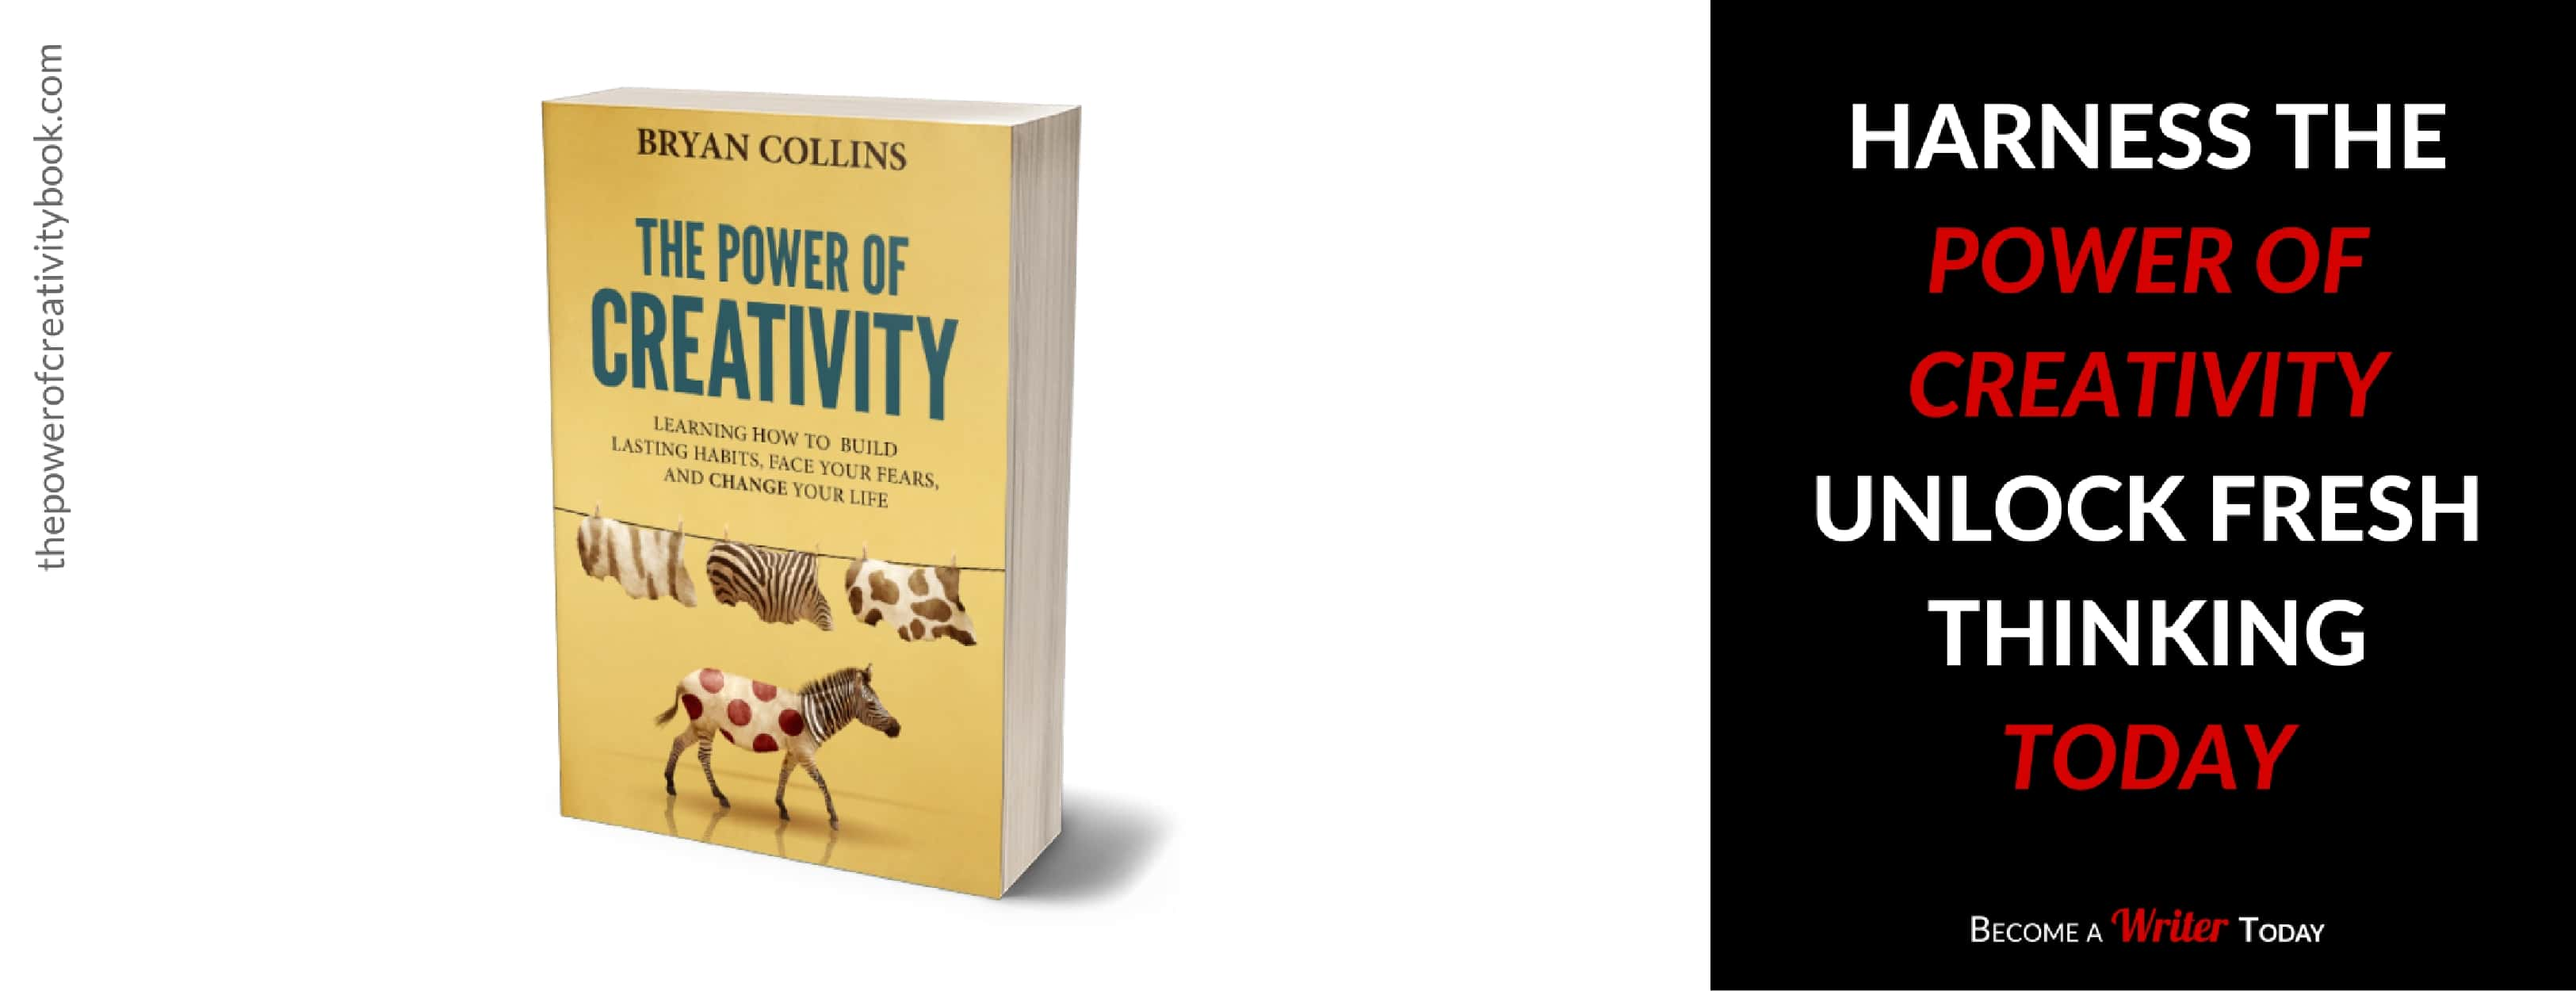 Harness the Power of Creativity and Finally Unlock Fresh Thinking Today